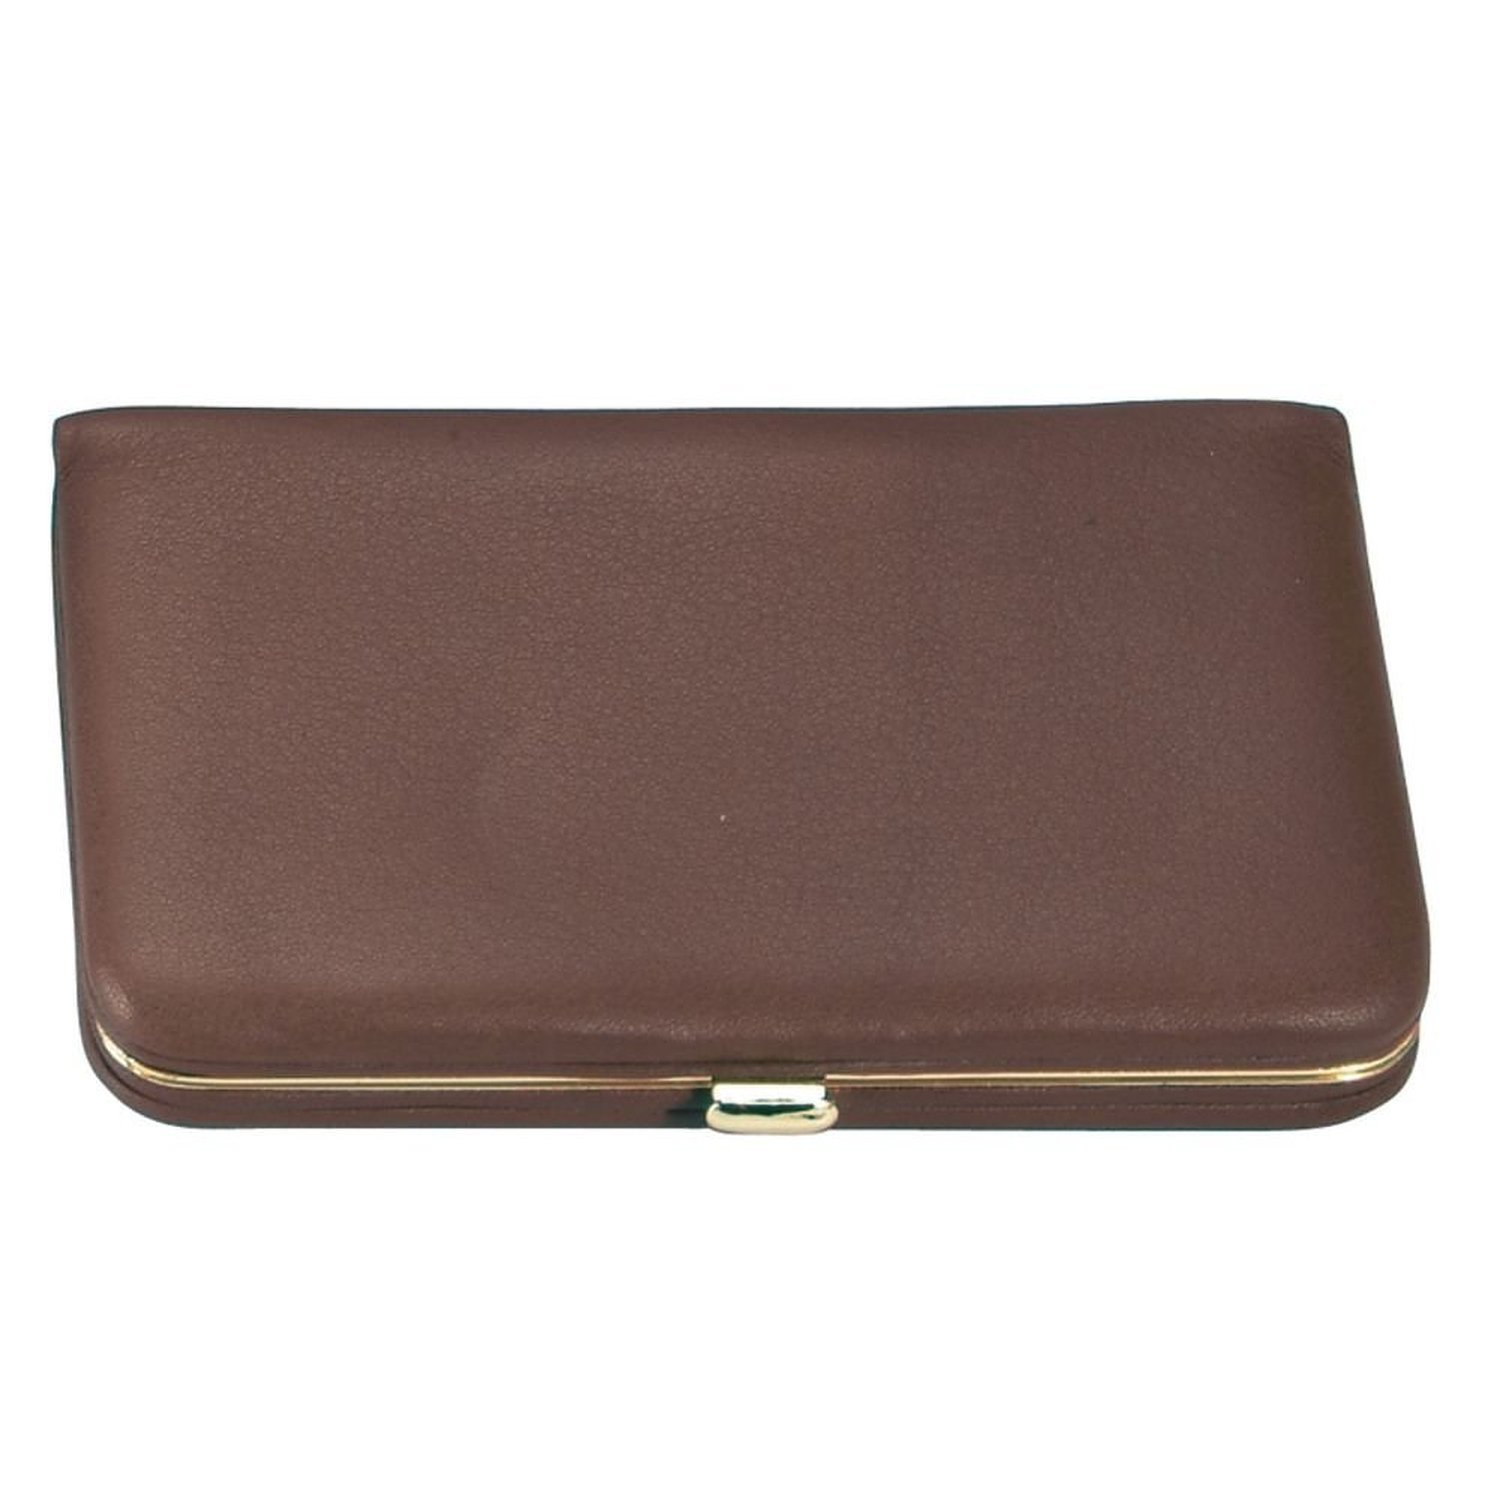 Royce Leather Framed Business Card Case Coco